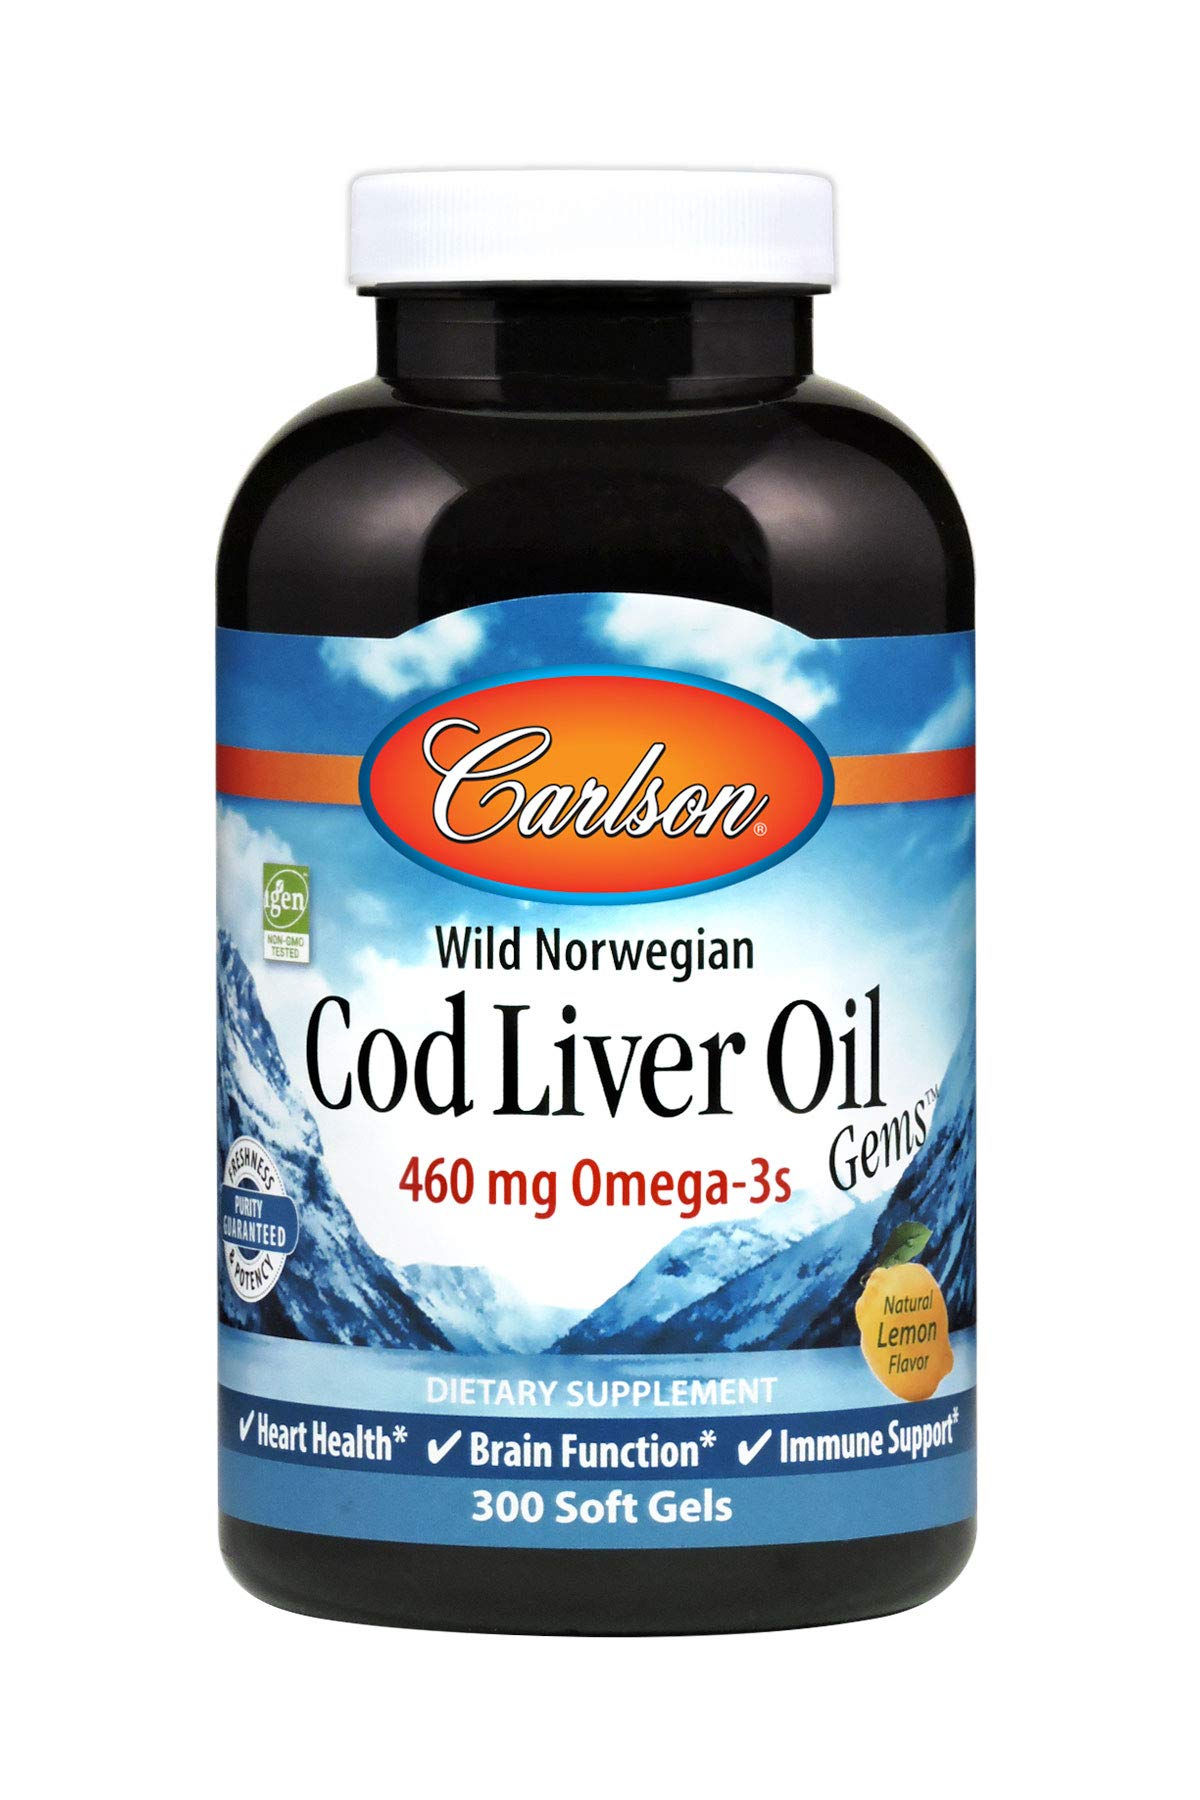 Carlson - Cod Liver Oil, 460 mg Omega-3s, Norwegian, Sustainably Sourced, Lemon, 300 soft gels